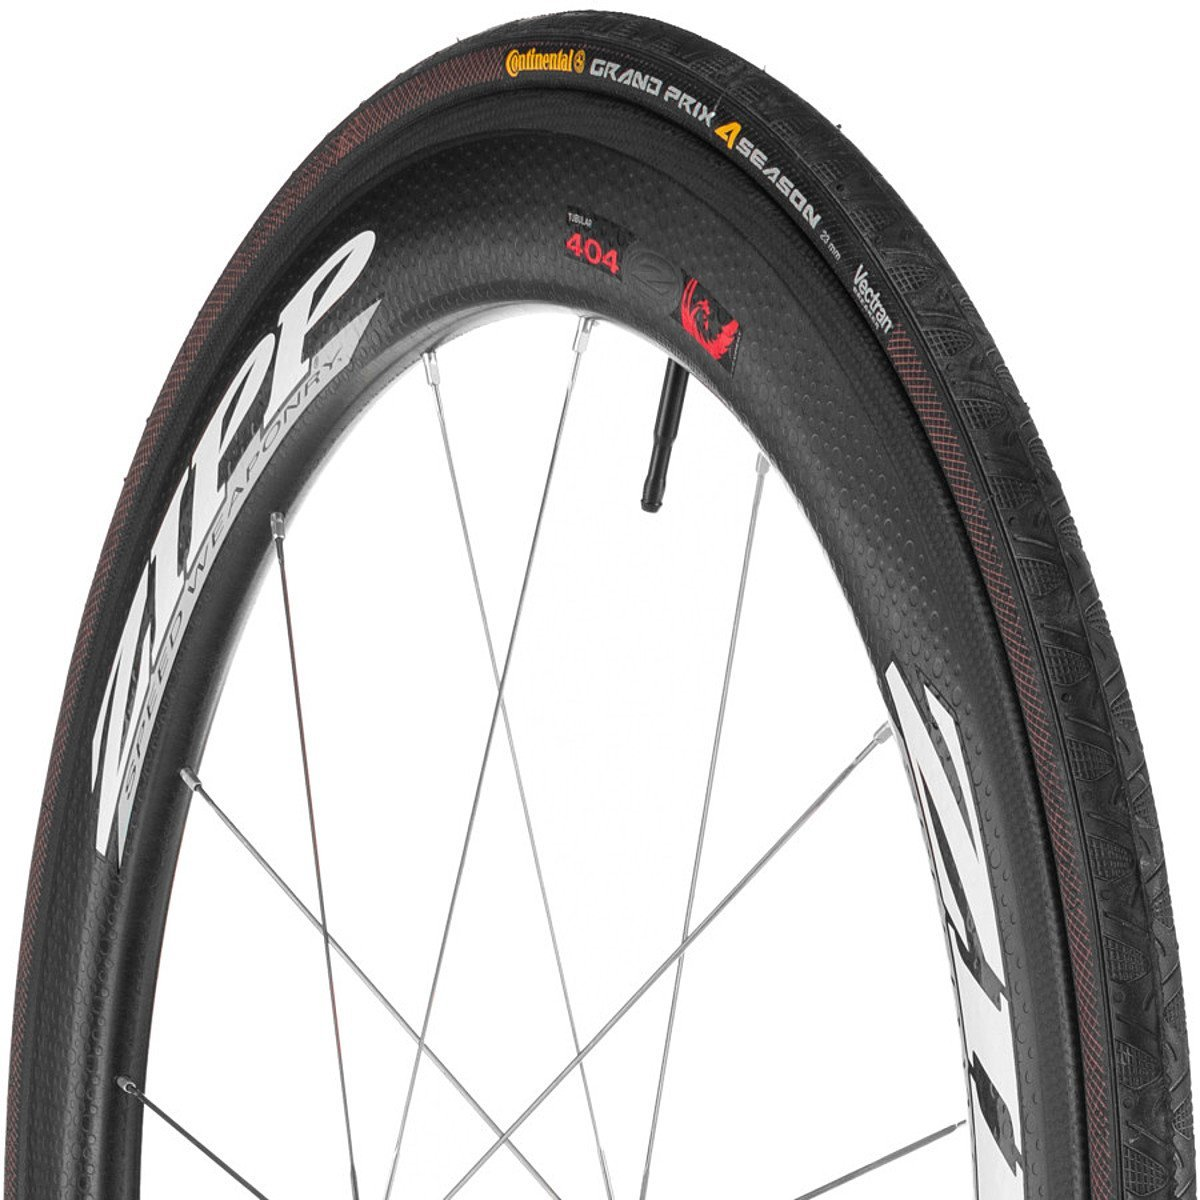 Continental Grand Prix 4 Season Road Bike Tire – Vectran Puncture Protection, DuraSkin Sidewall Protection, All Season Replacement Clincher Tire